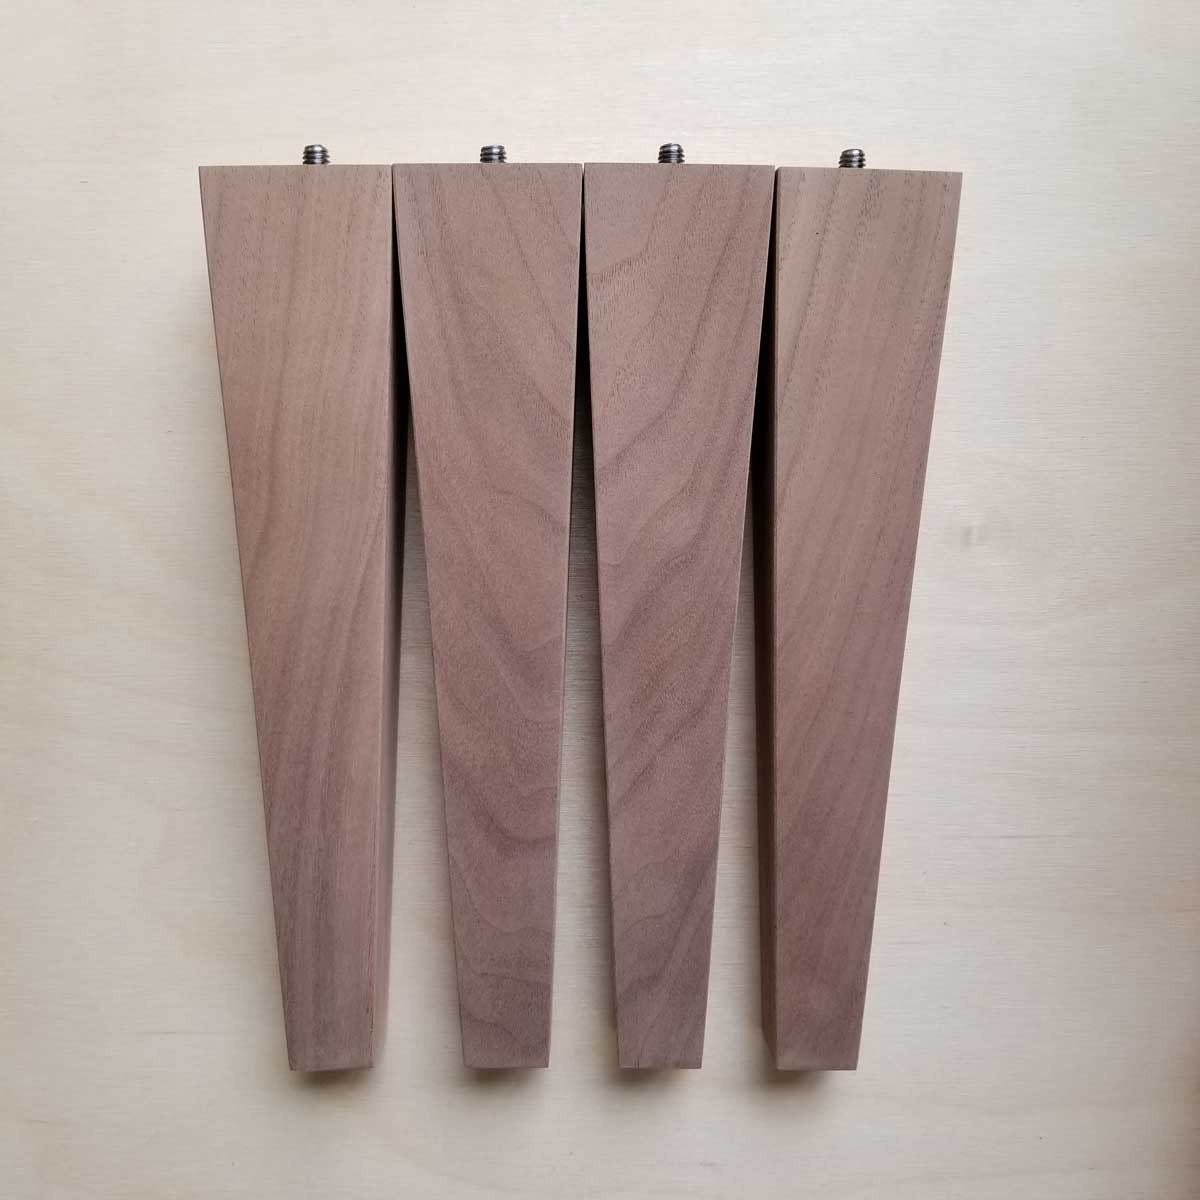 Square Tapered Table Legs Sold Individually - Atomic Walnut